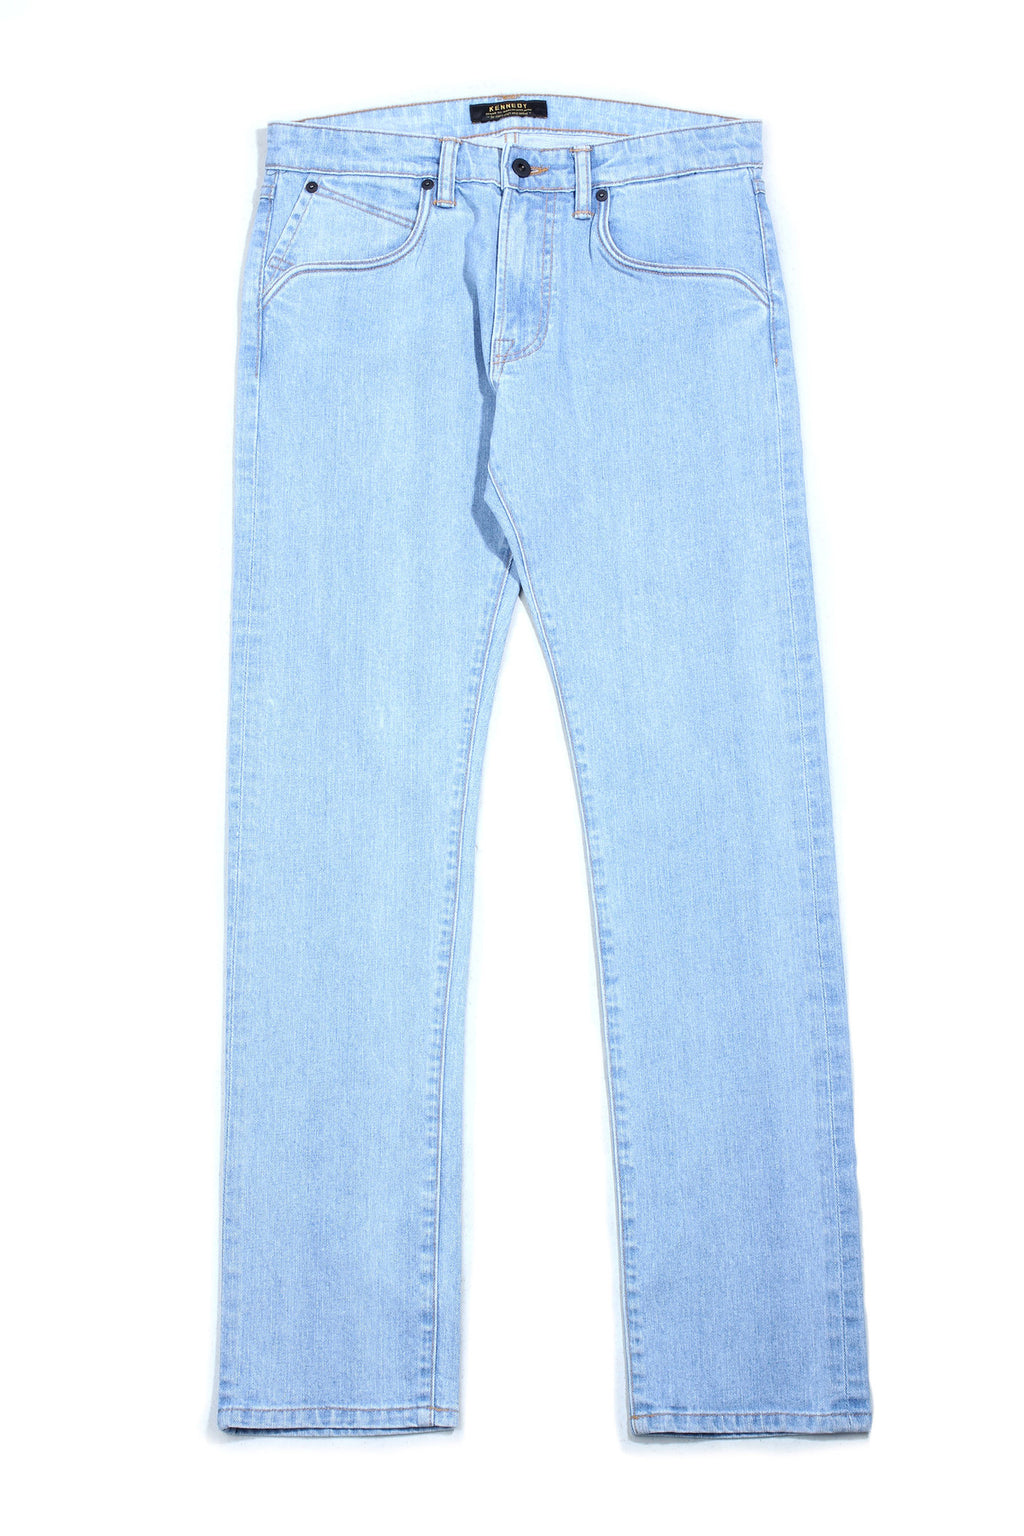 Kennedy Denim Z-Line Pants Stoned Tone Pants Ascent Wear - 1